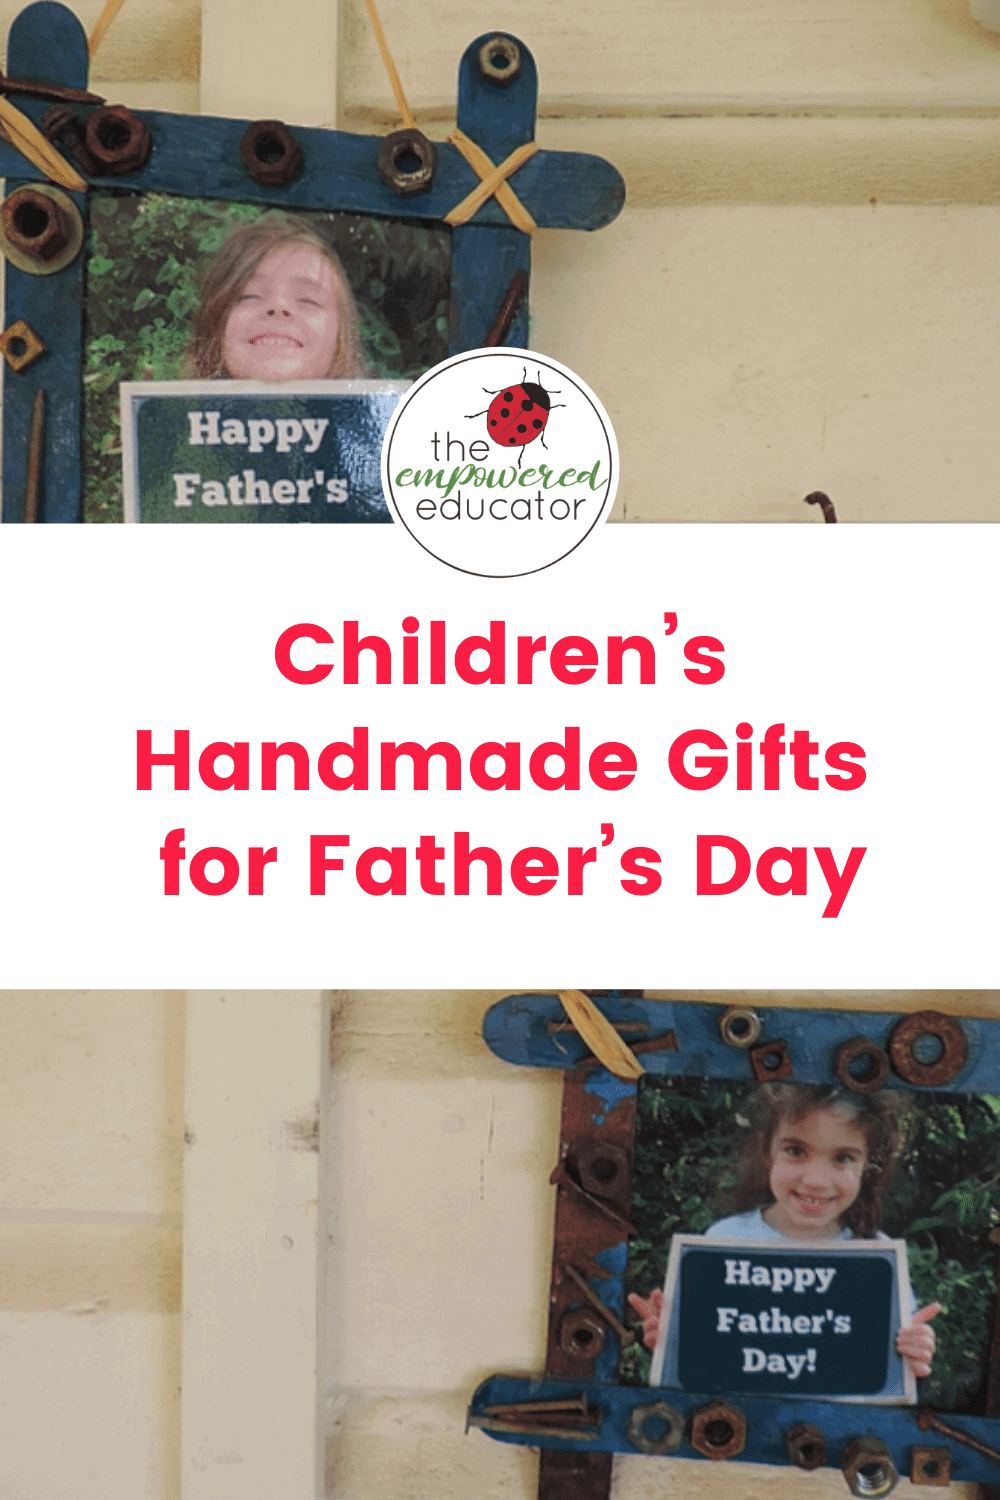 children's handmade gifts for father's day